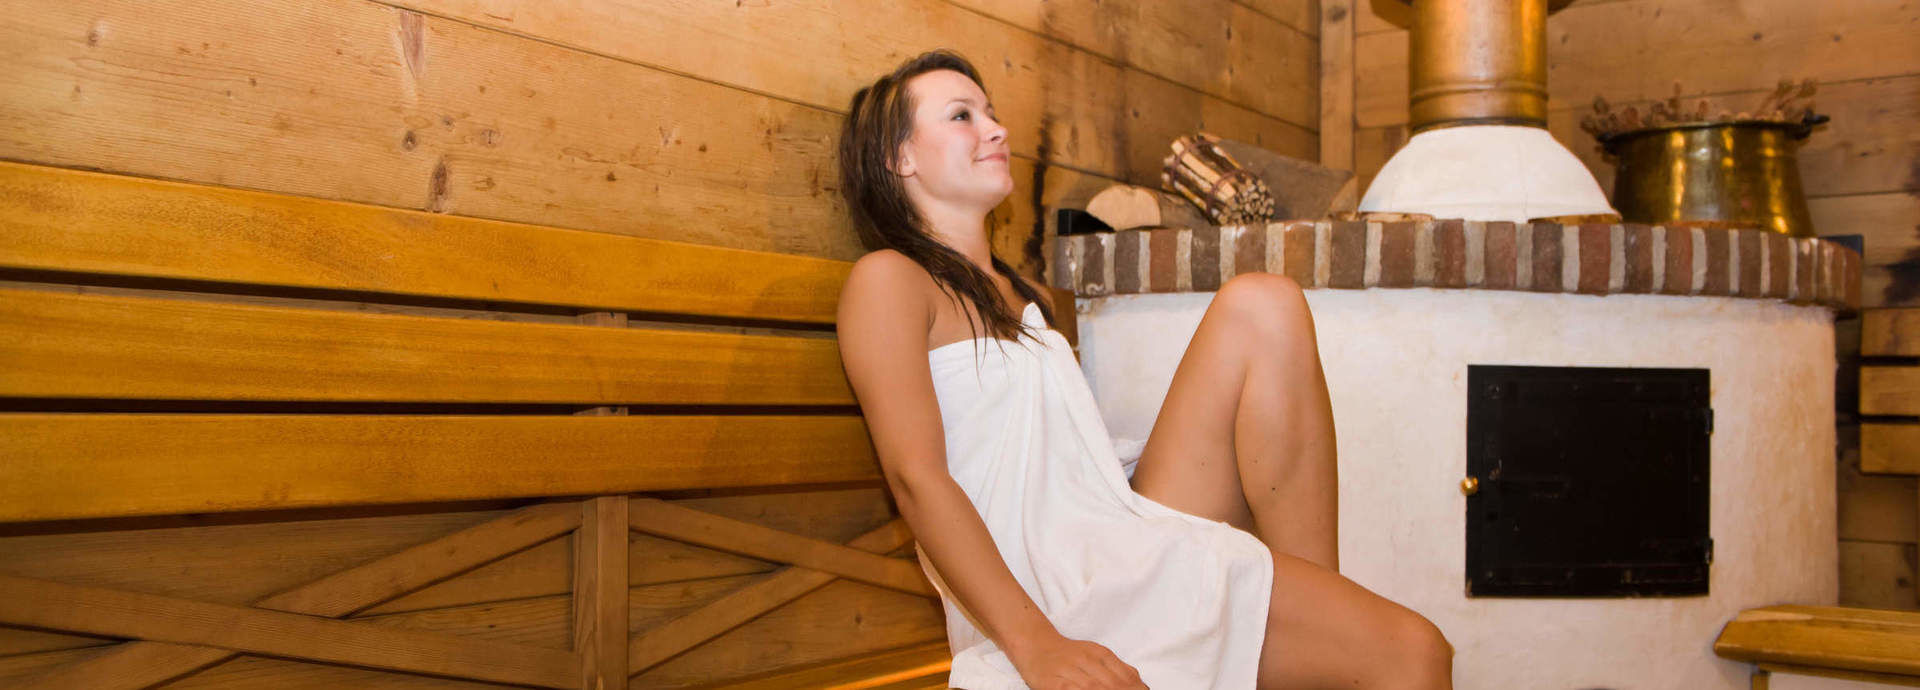 Stubensauna im Romantischer Winkel SPA & Wellness Resort